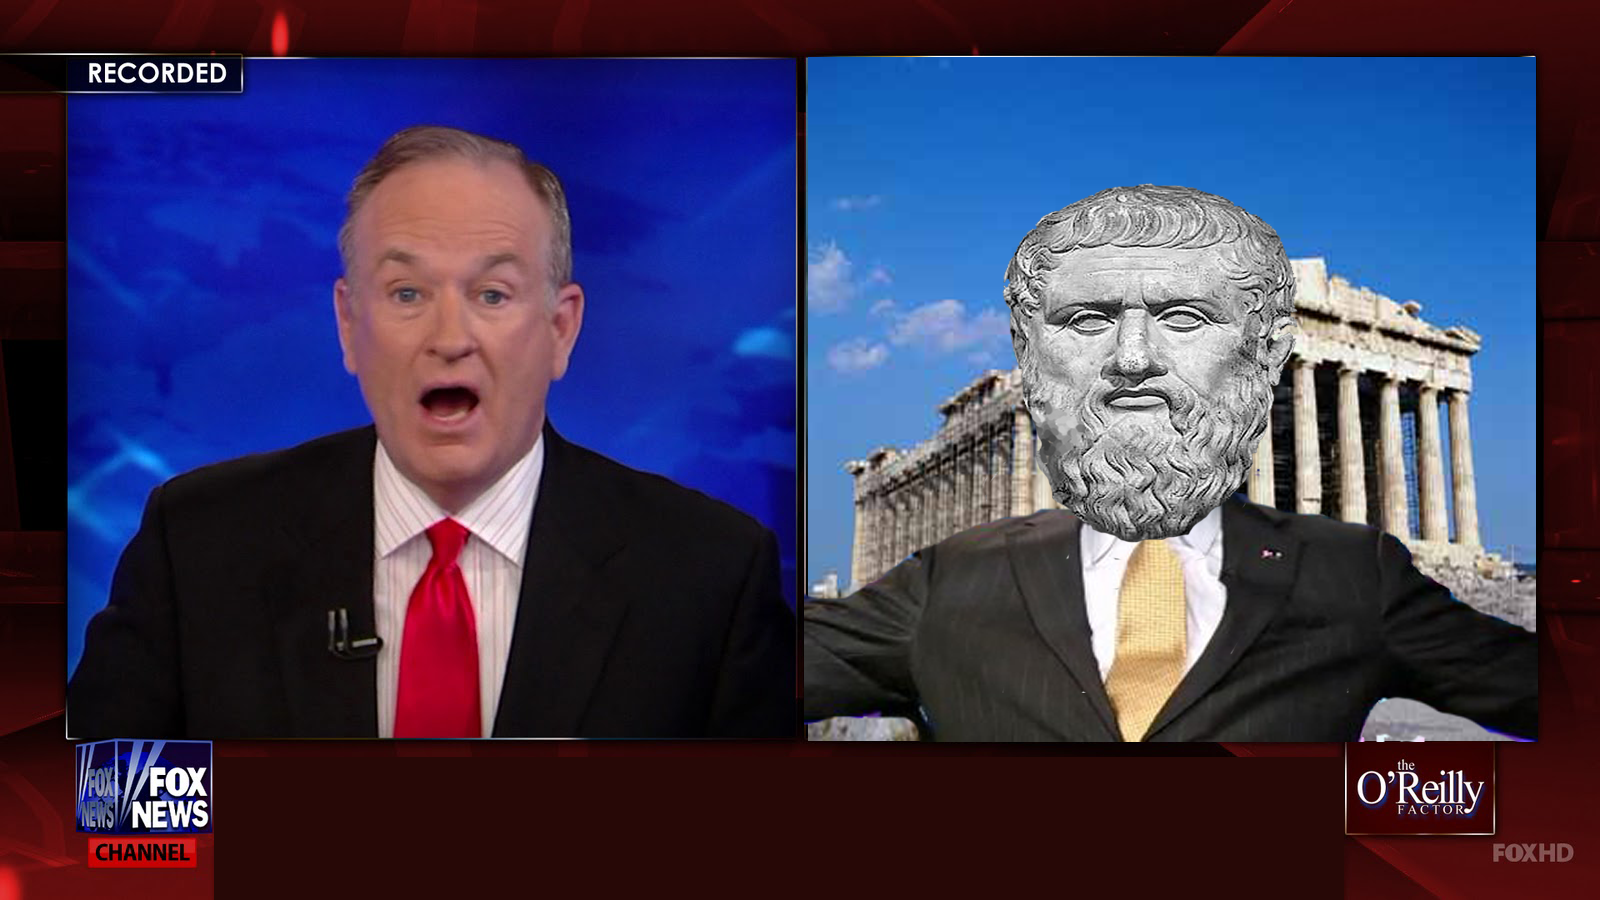 O'Reilly mash up